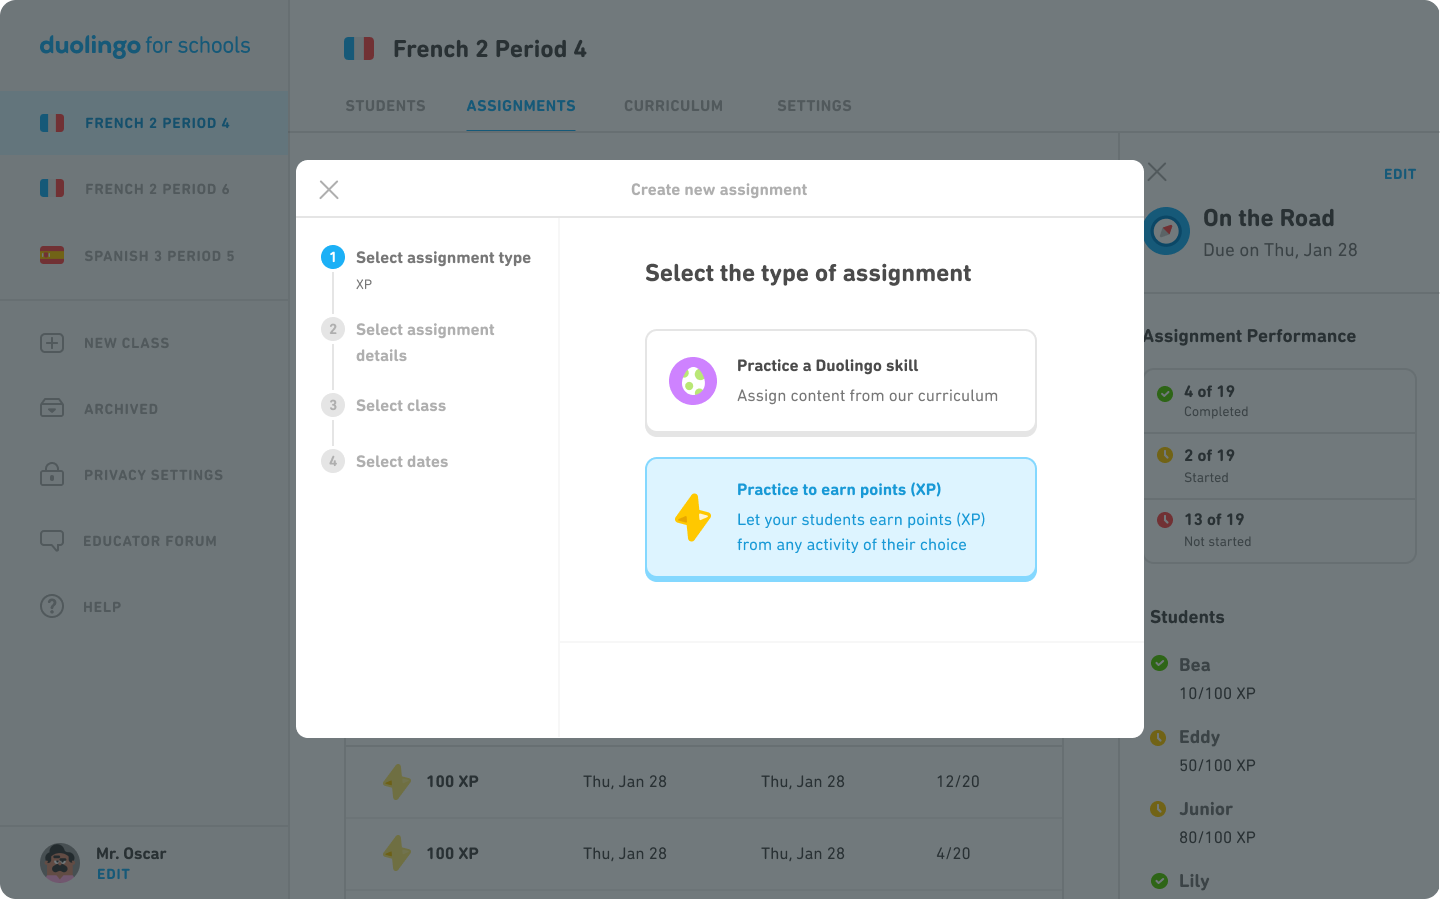 A screen that shows two options for creating an assignment